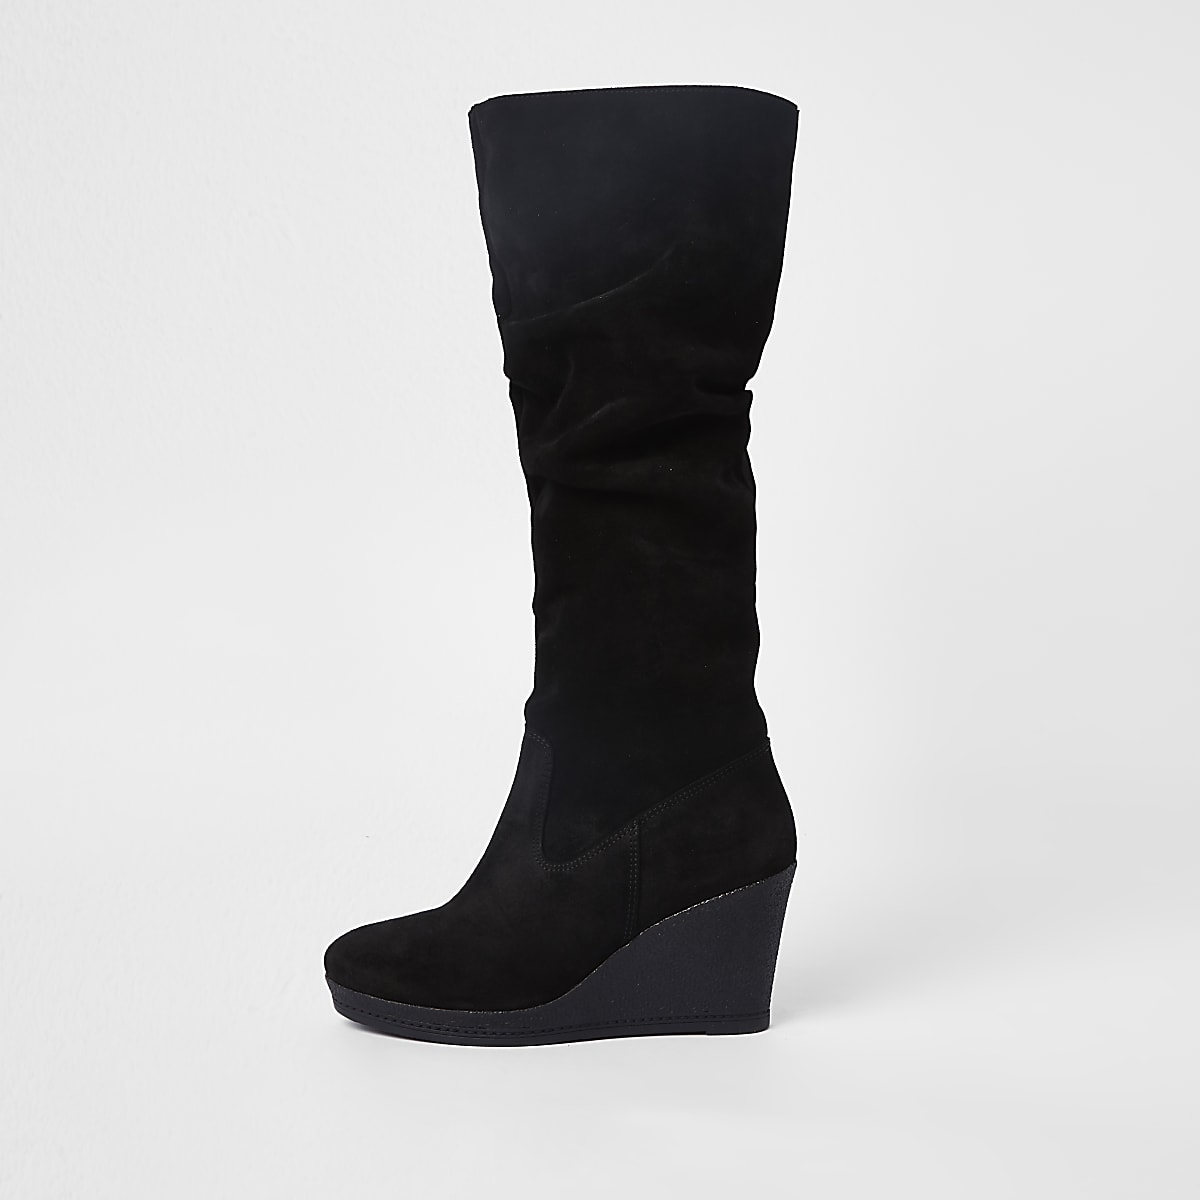 92f10a58904a Black suede knee high wedge boots - Boots - Shoes & Boots - women